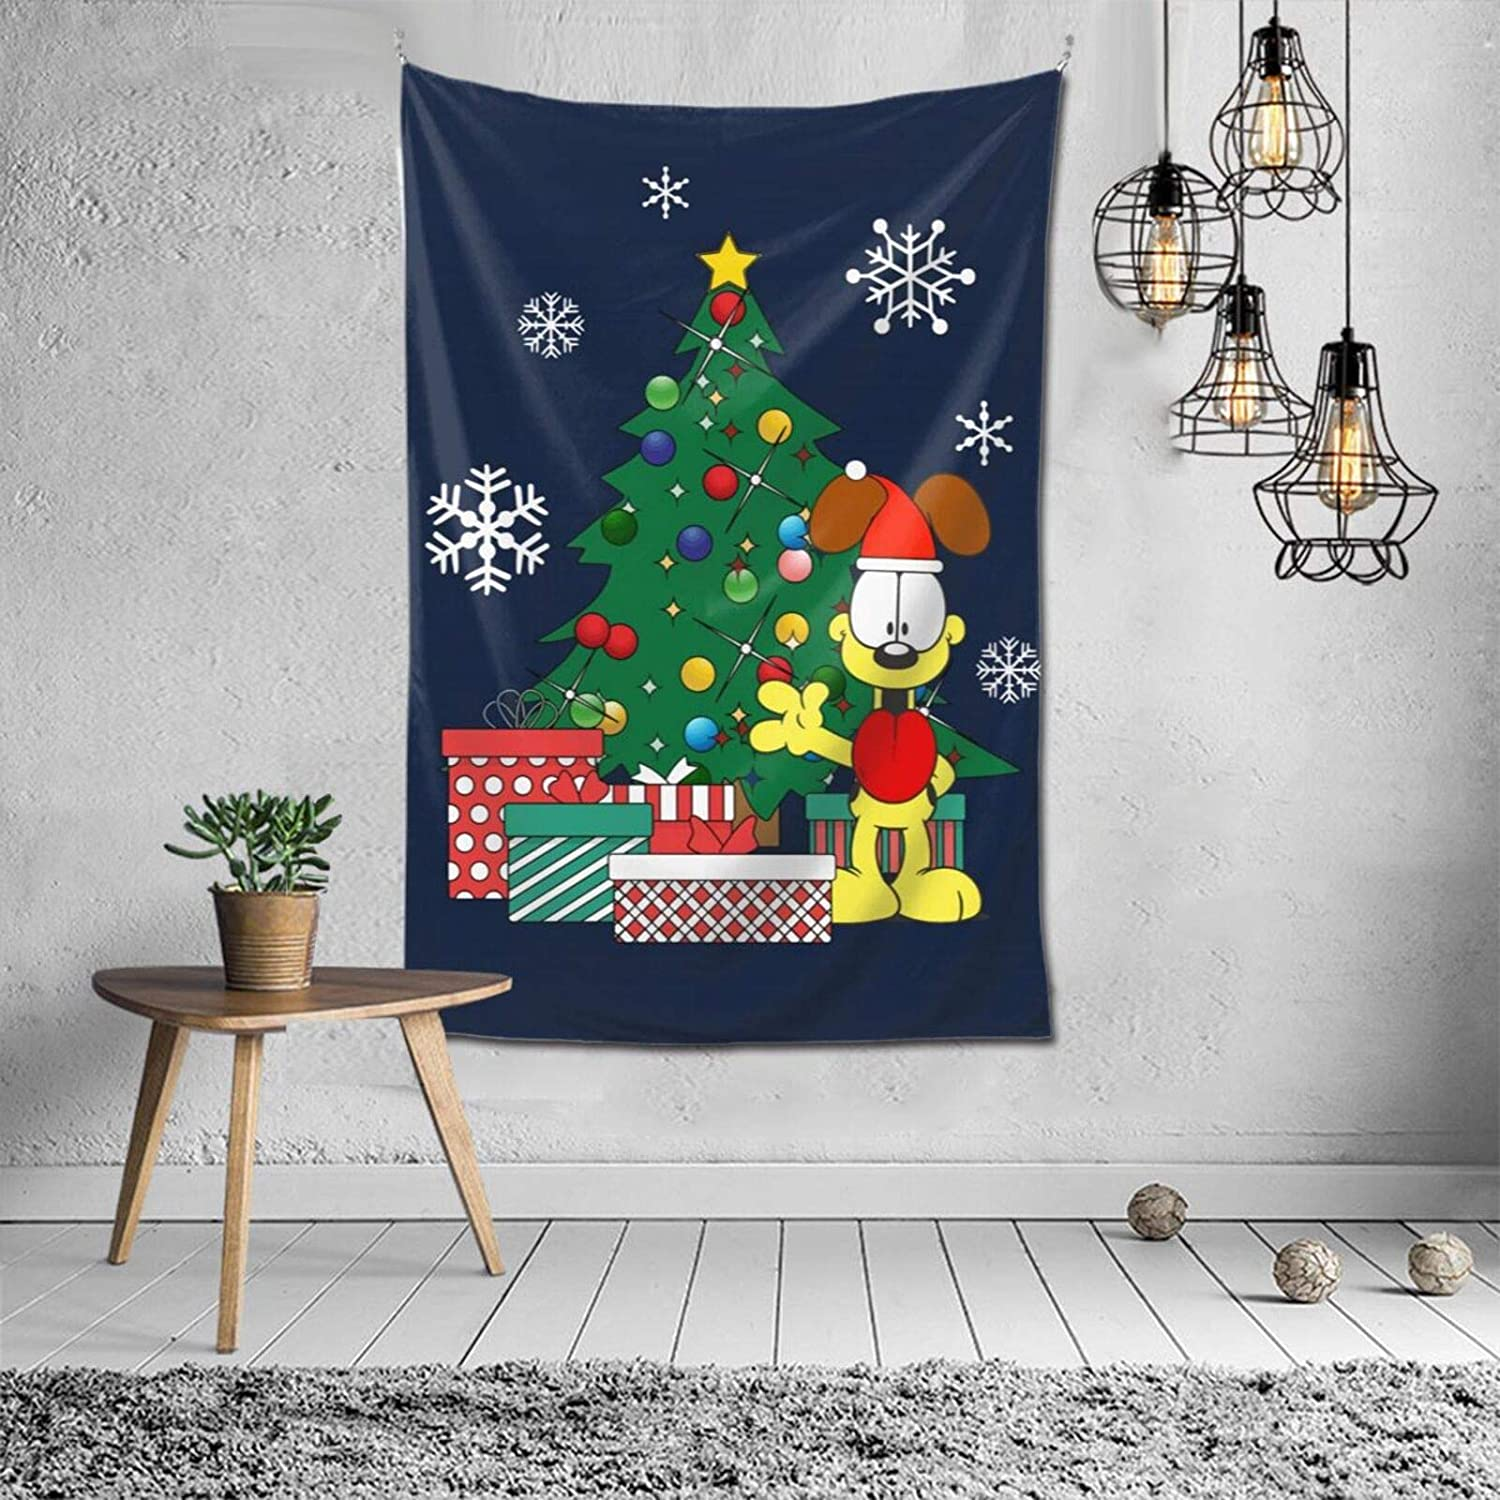 Vertical Tapestry Garfield Odie Around The Christmas Tree Wall Tapestry Anime Fans Home Dorm Wall Decor 60x40 Inches